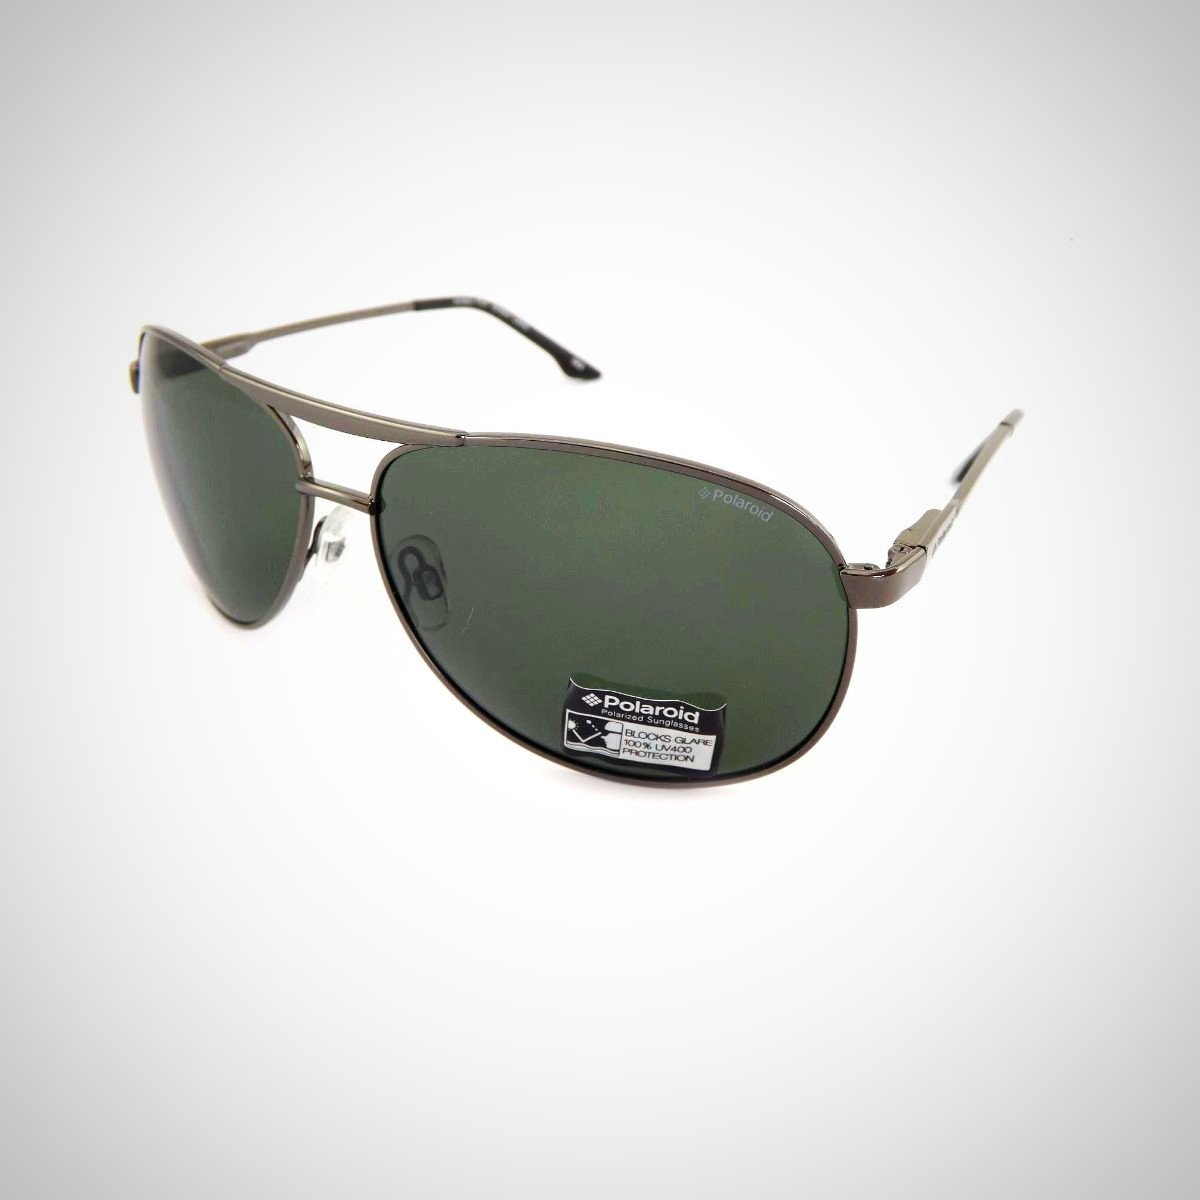 Polaroid S4300 Men's Green Polarized Sunglasses